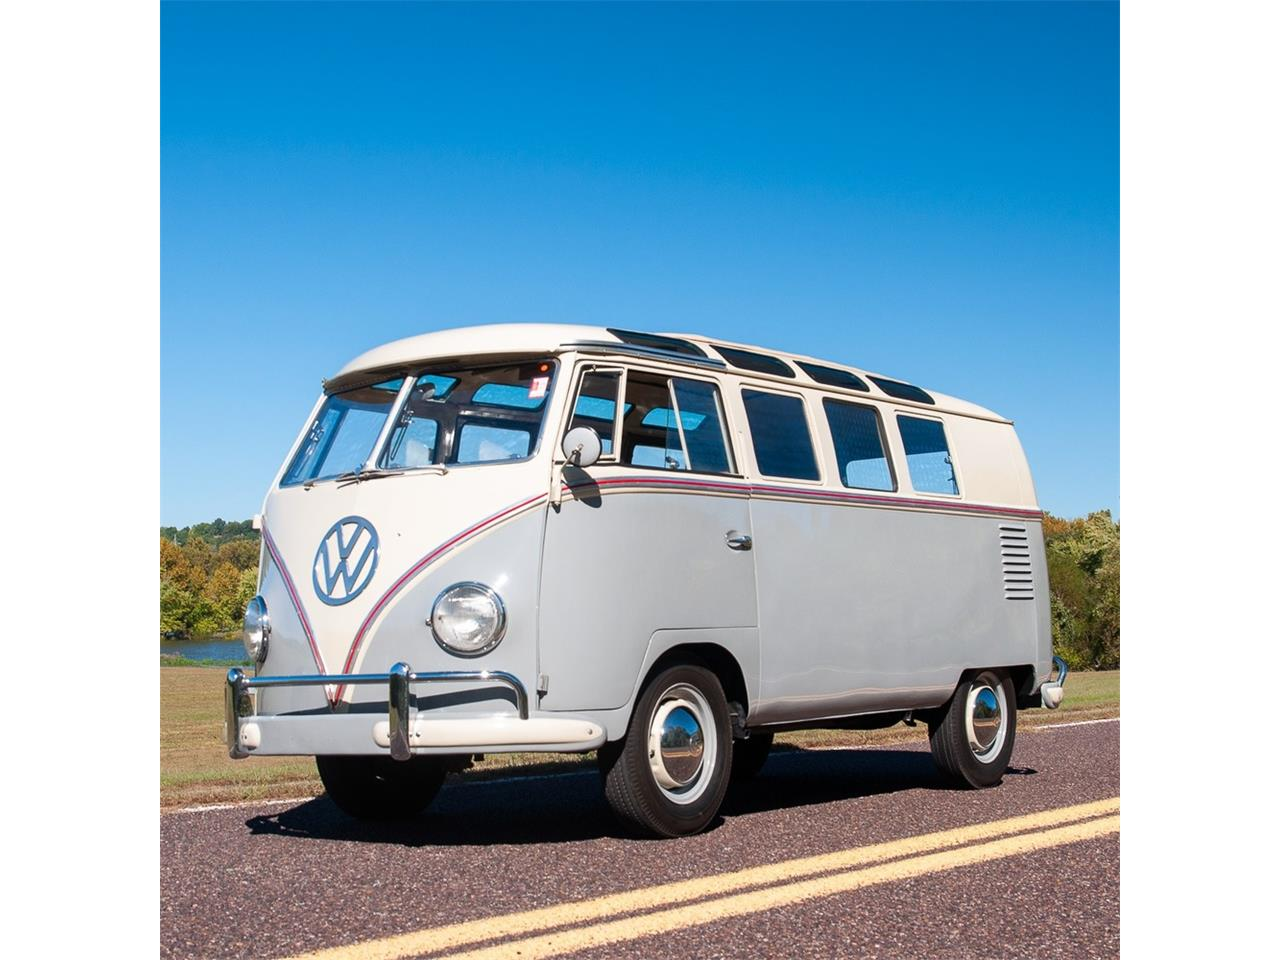 Large Picture of '59 Volkswagen 19-Window Bus located in St. Louis Missouri - $57,500.00 - ORNF